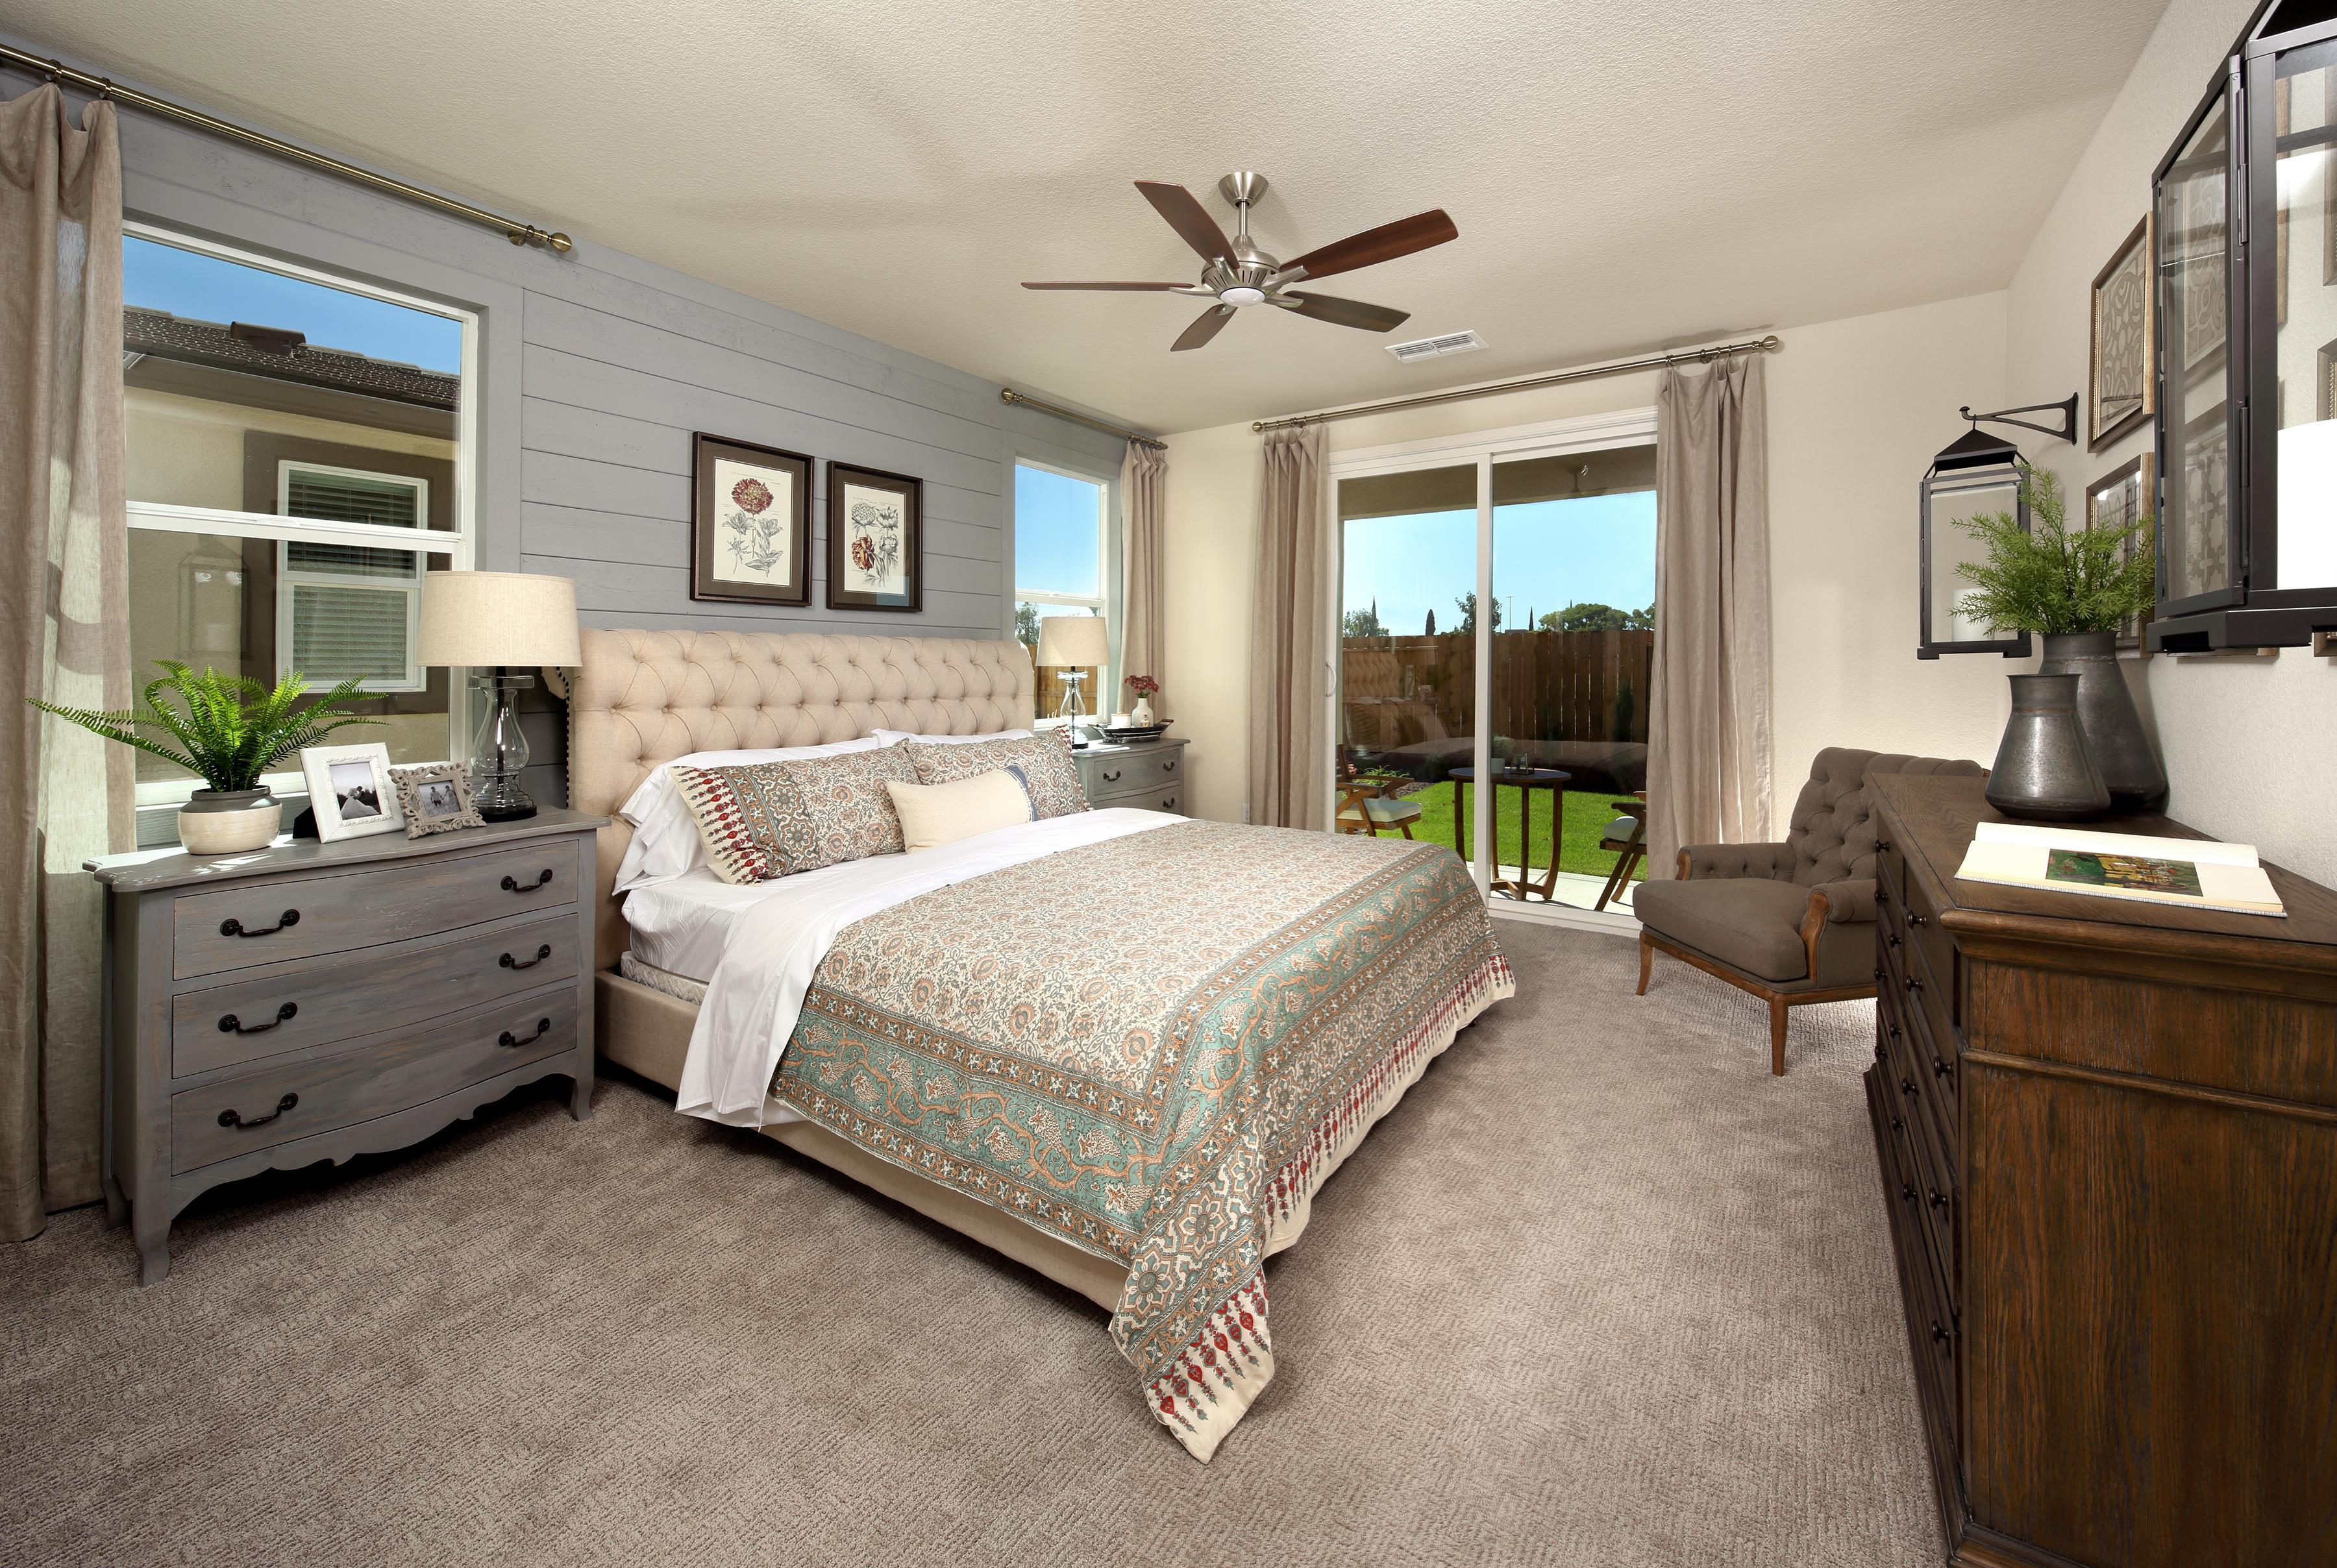 Bedroom featured in THE UPTOWN By Florsheim Homes in Modesto, CA